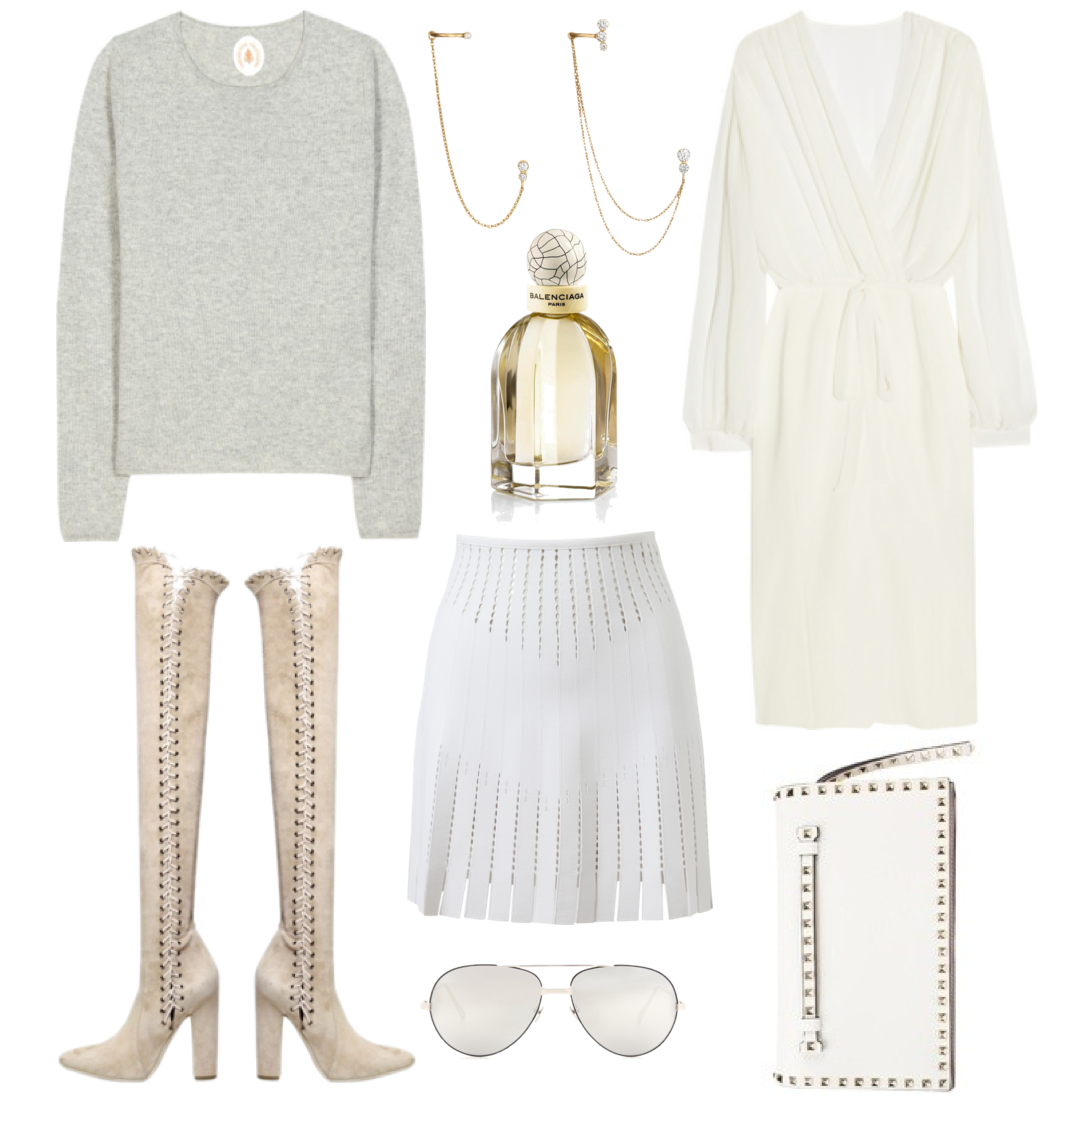 White spring closet - Valentino clutch, Linda Farrow glasses, Balenciaga perfume, Sophie Bille Brahe earrings, Alaïa skirt, Salvatore Ferragamo boots, L'Wren Scott dress and jardin des Orangers pullover